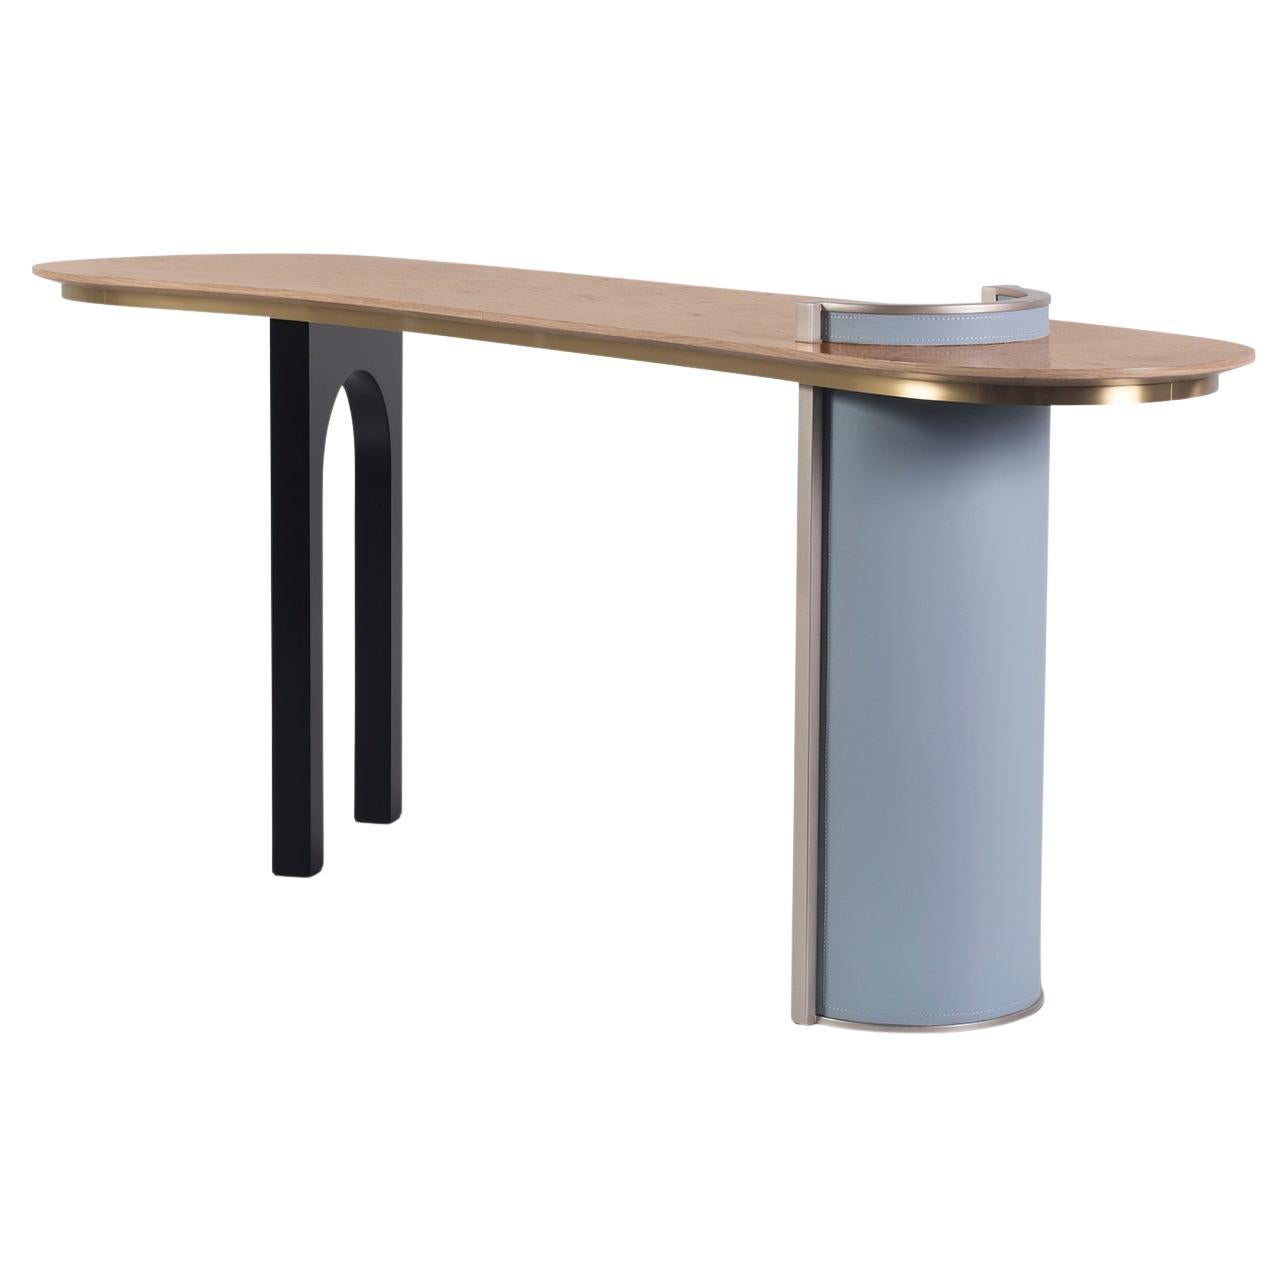 Chiado Console Blue Leather Champagne Black Lacquered Brushed Brass Oak Root Top